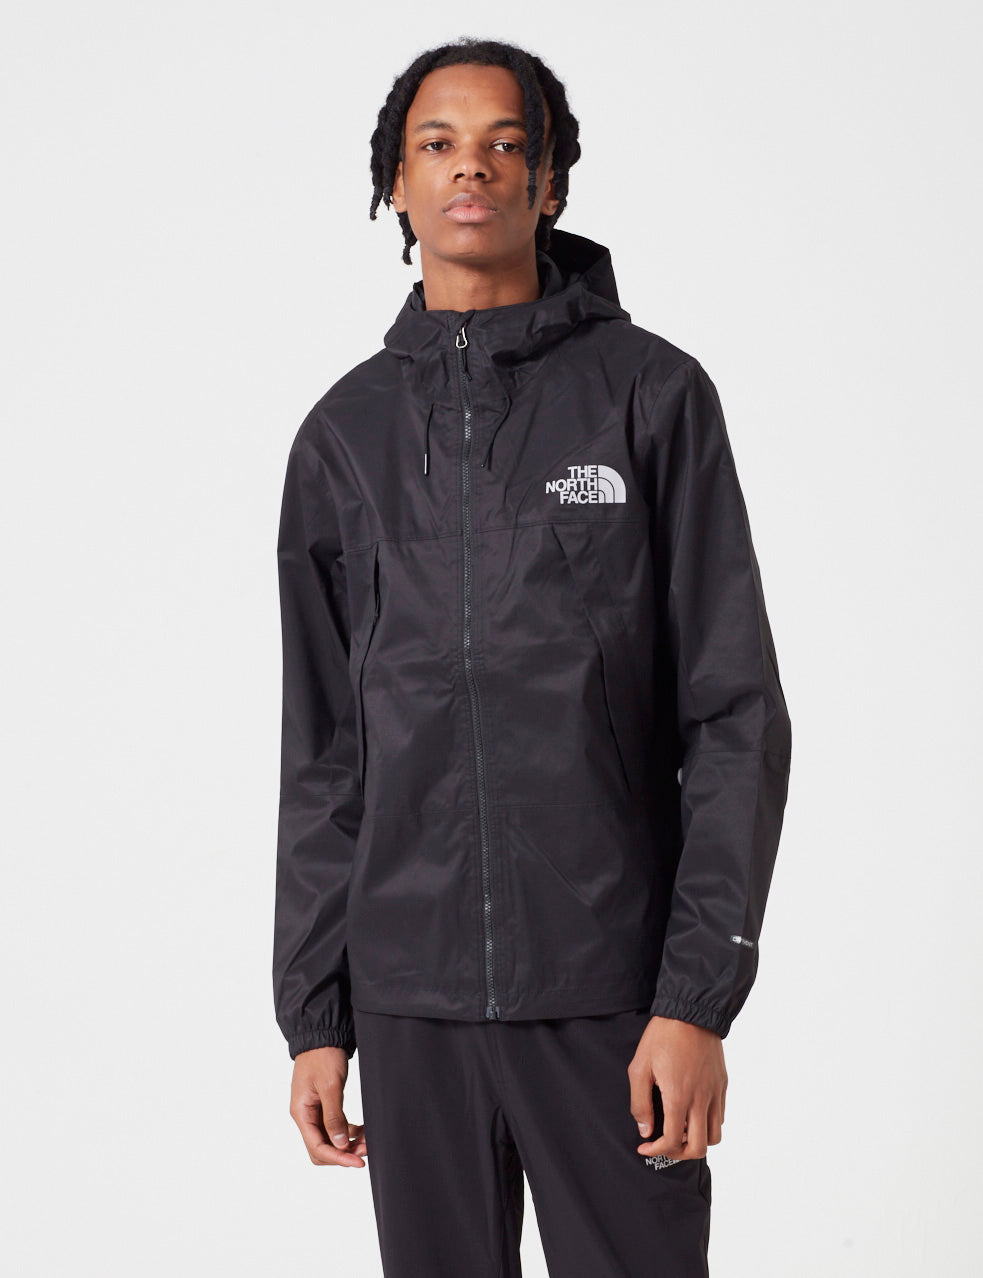 North Face 1990 Mountain Q Jacket - Black